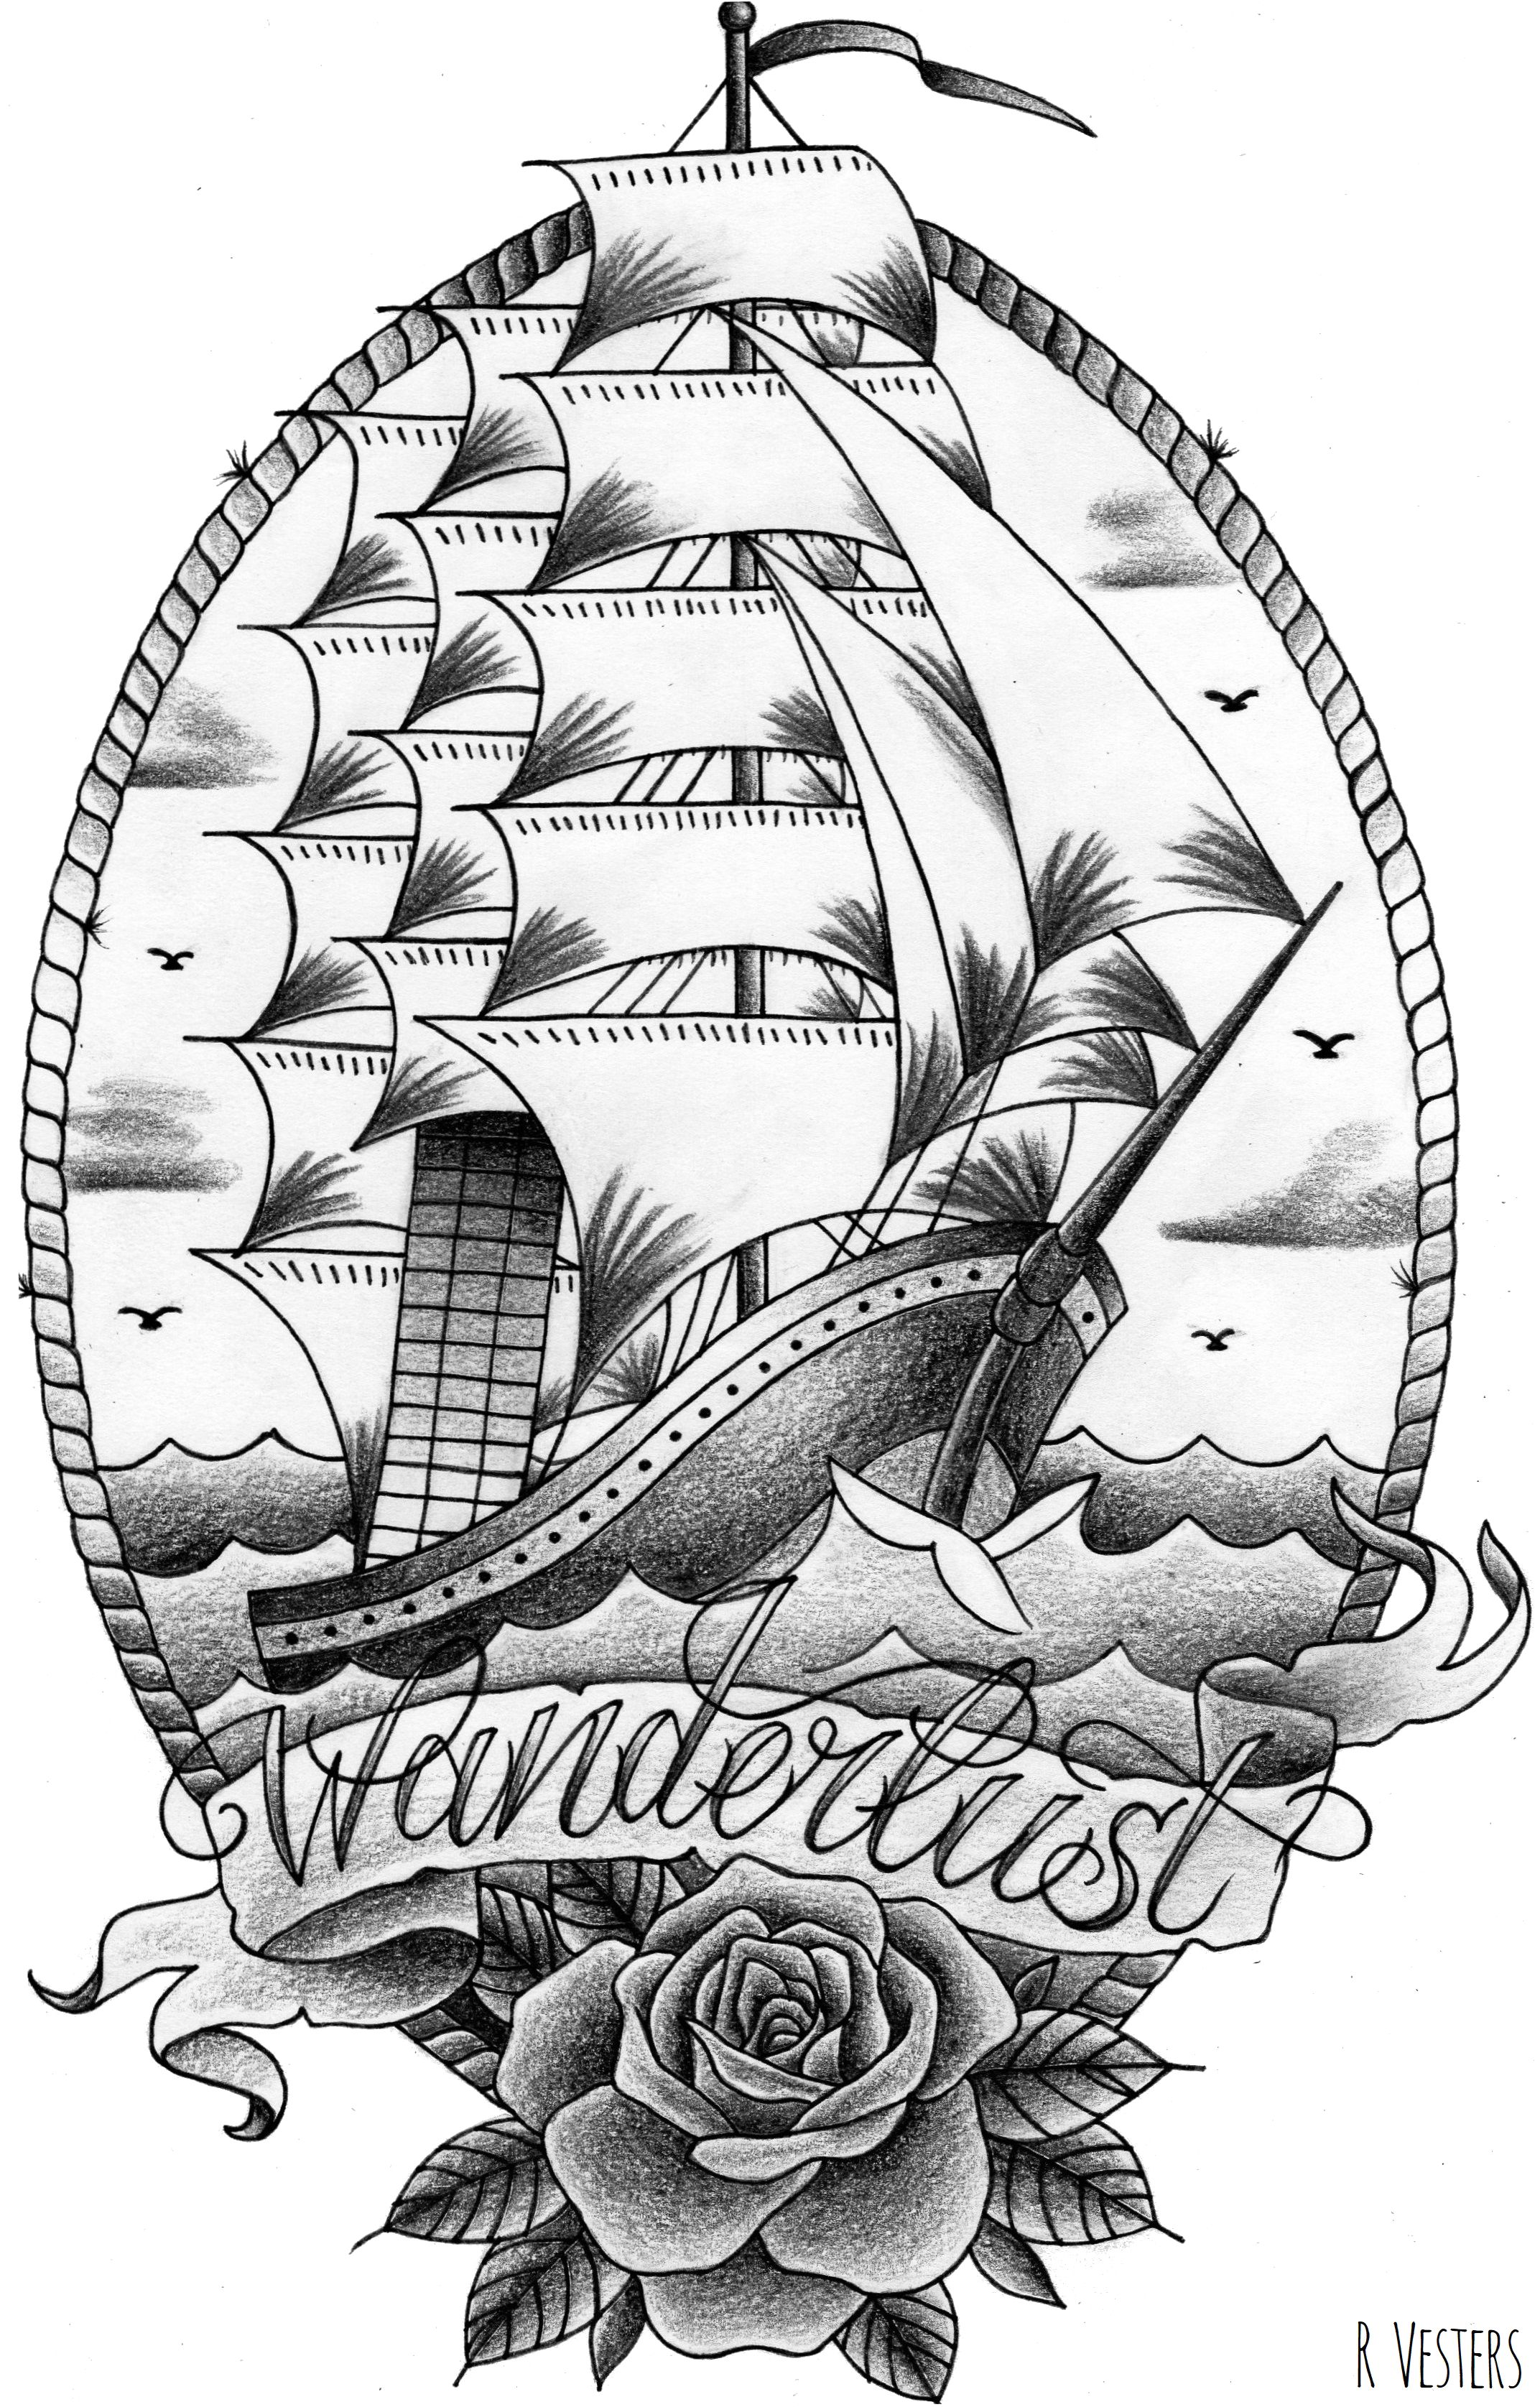 Old school ship tattoo design | Old school tattoo designs ...Old School Battleship Tattoos